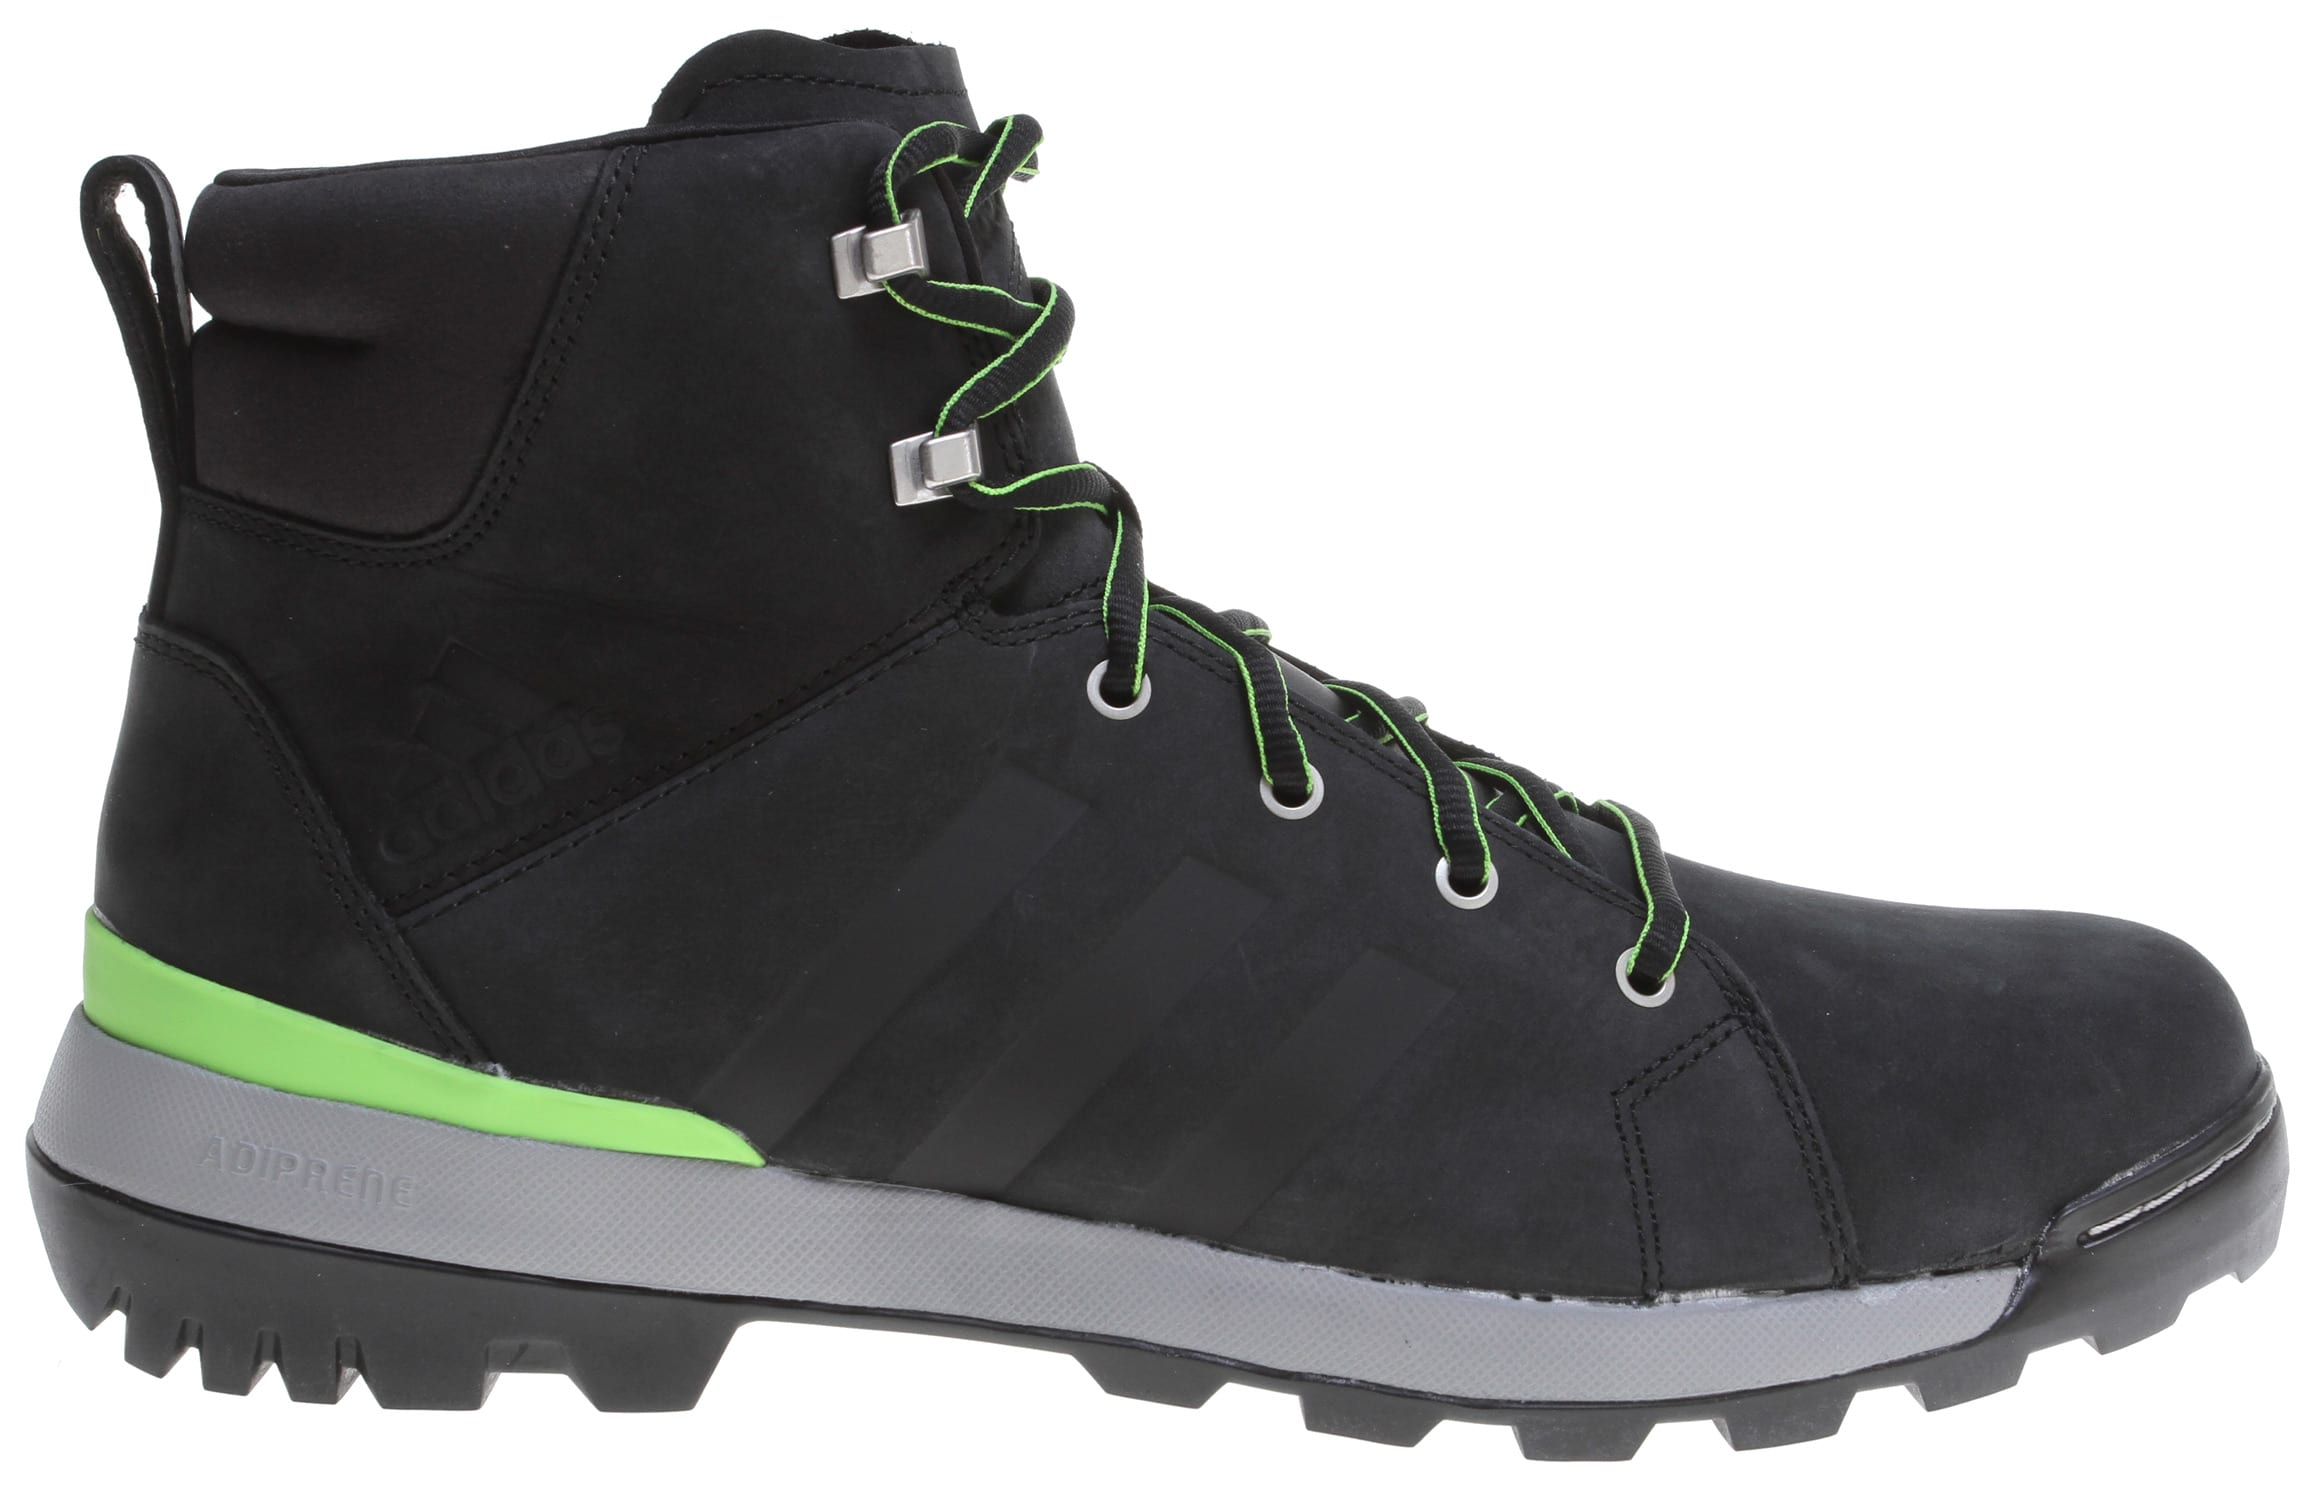 Discount Hiking Shoes - Boots - Cheap Hiking Boots | Save up to 80